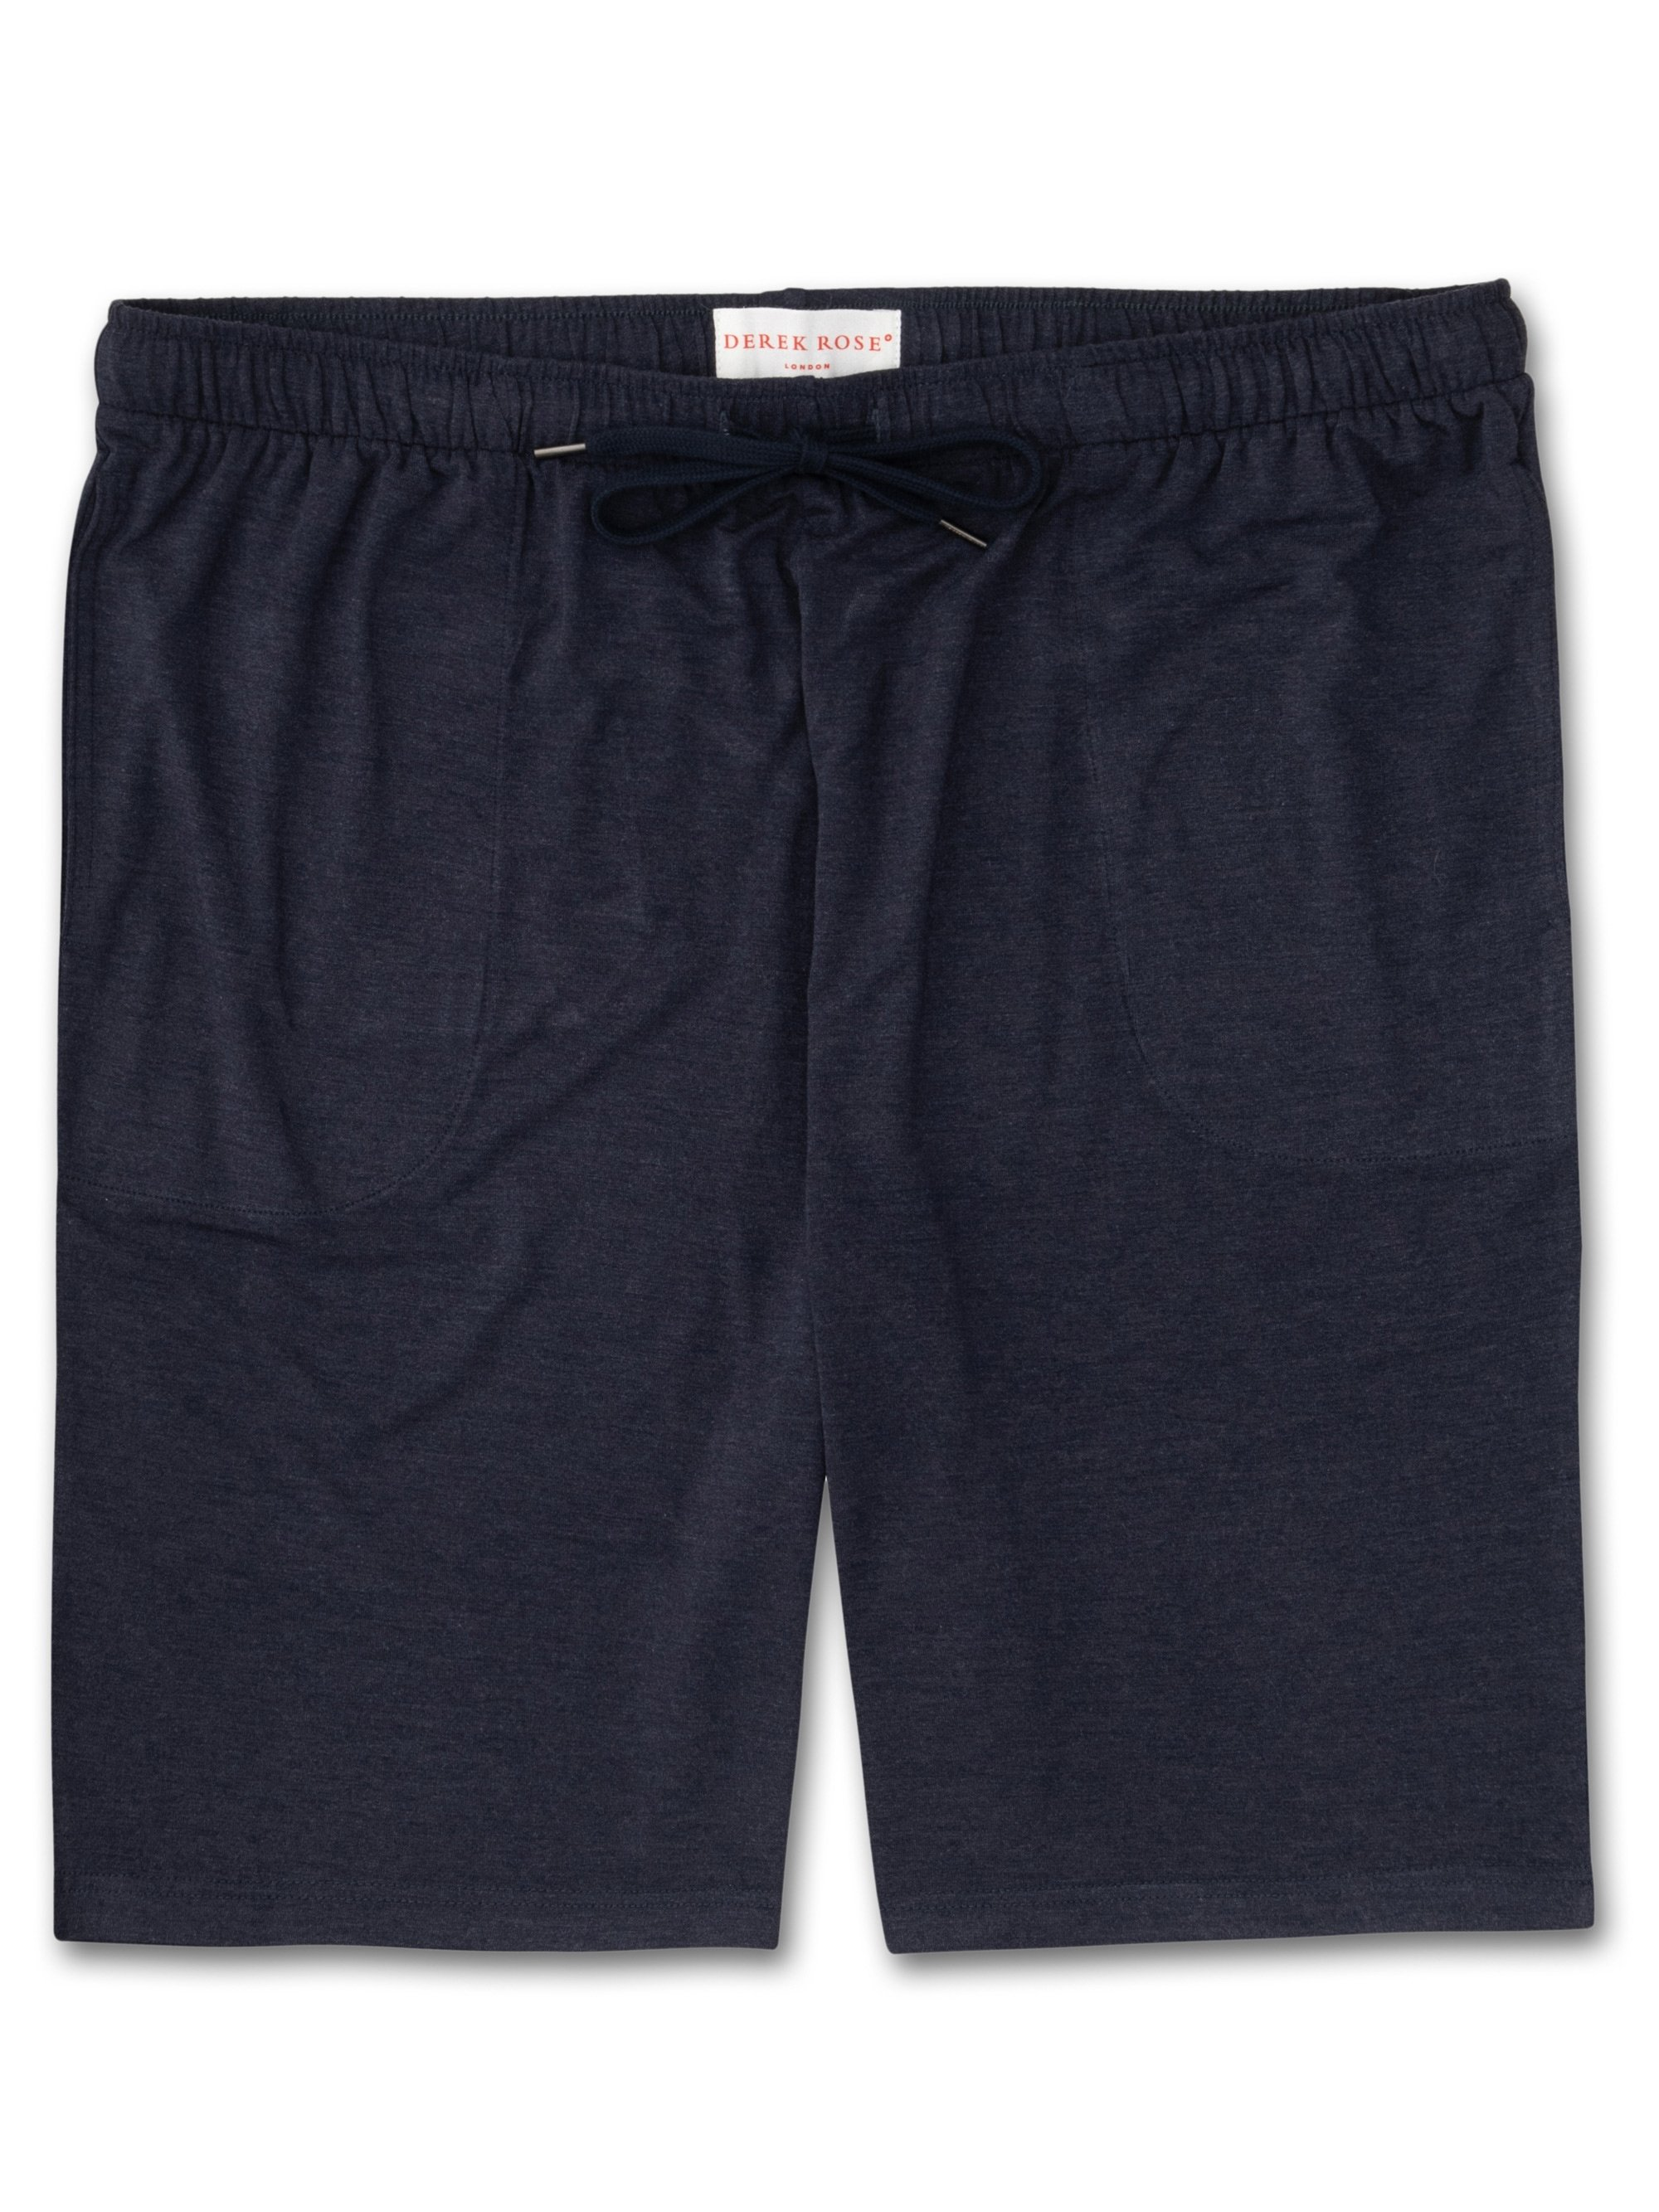 Men's Jersey Shorts Marlowe Micro Modal Stretch Navy